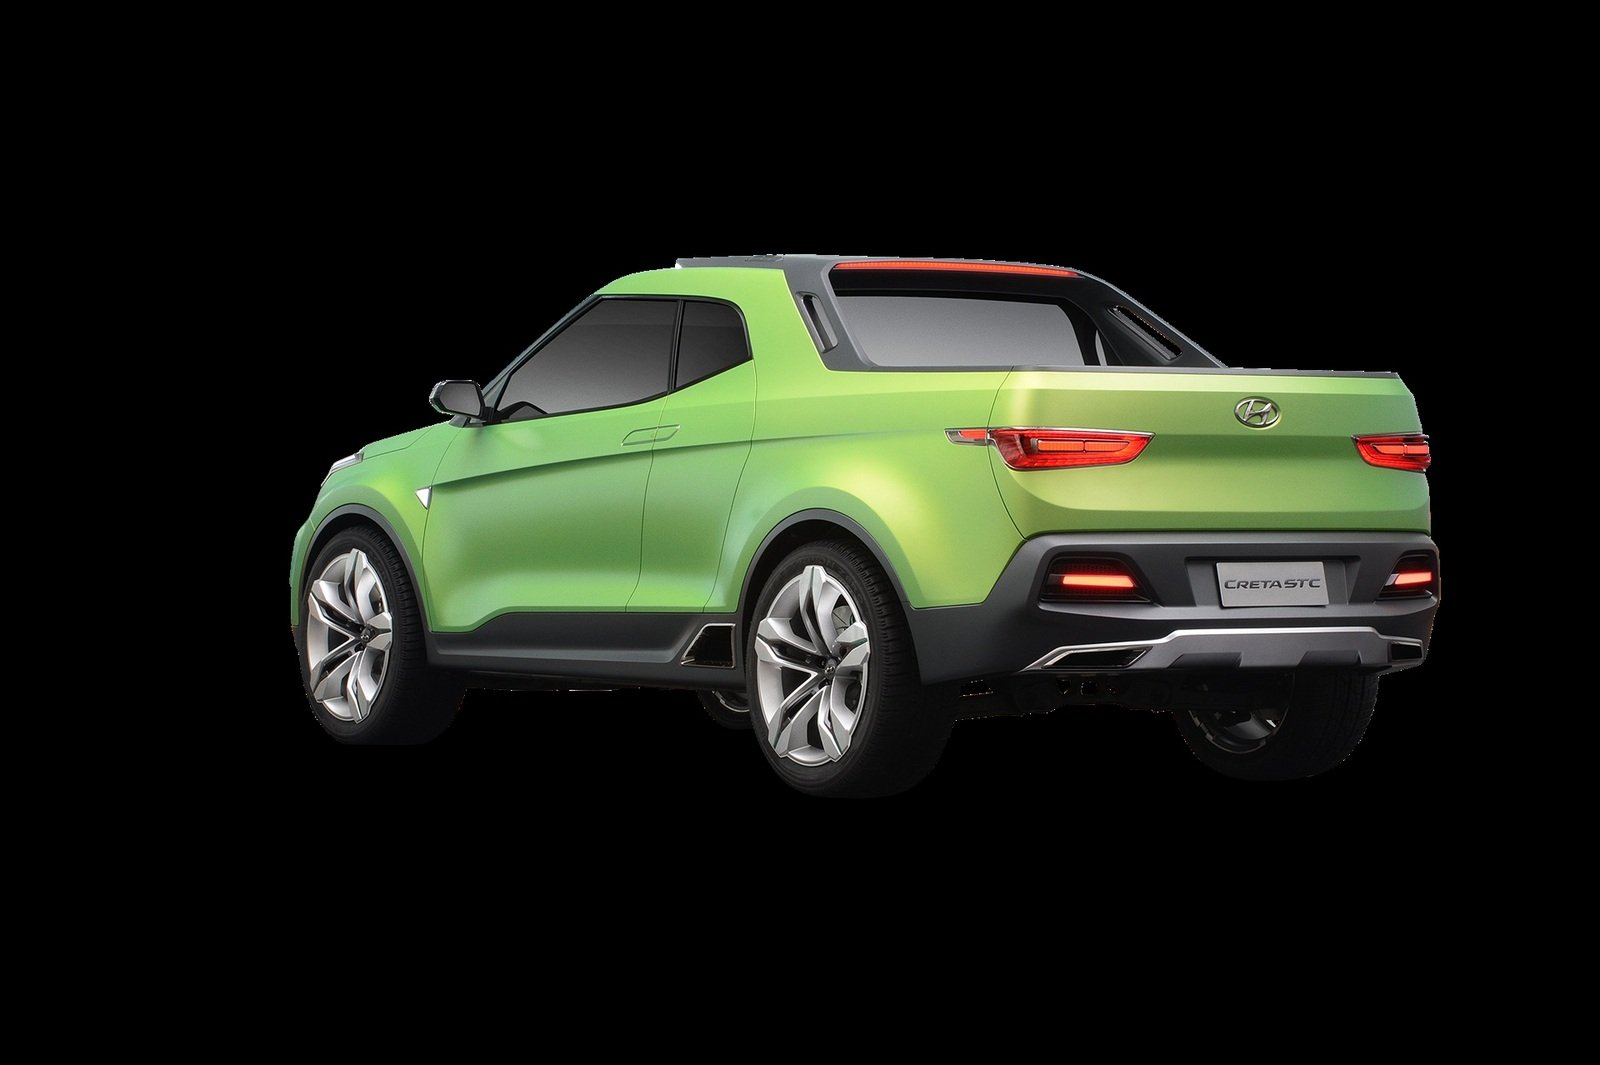 Hyundai Creta Pickup Concept Shown For The First Time